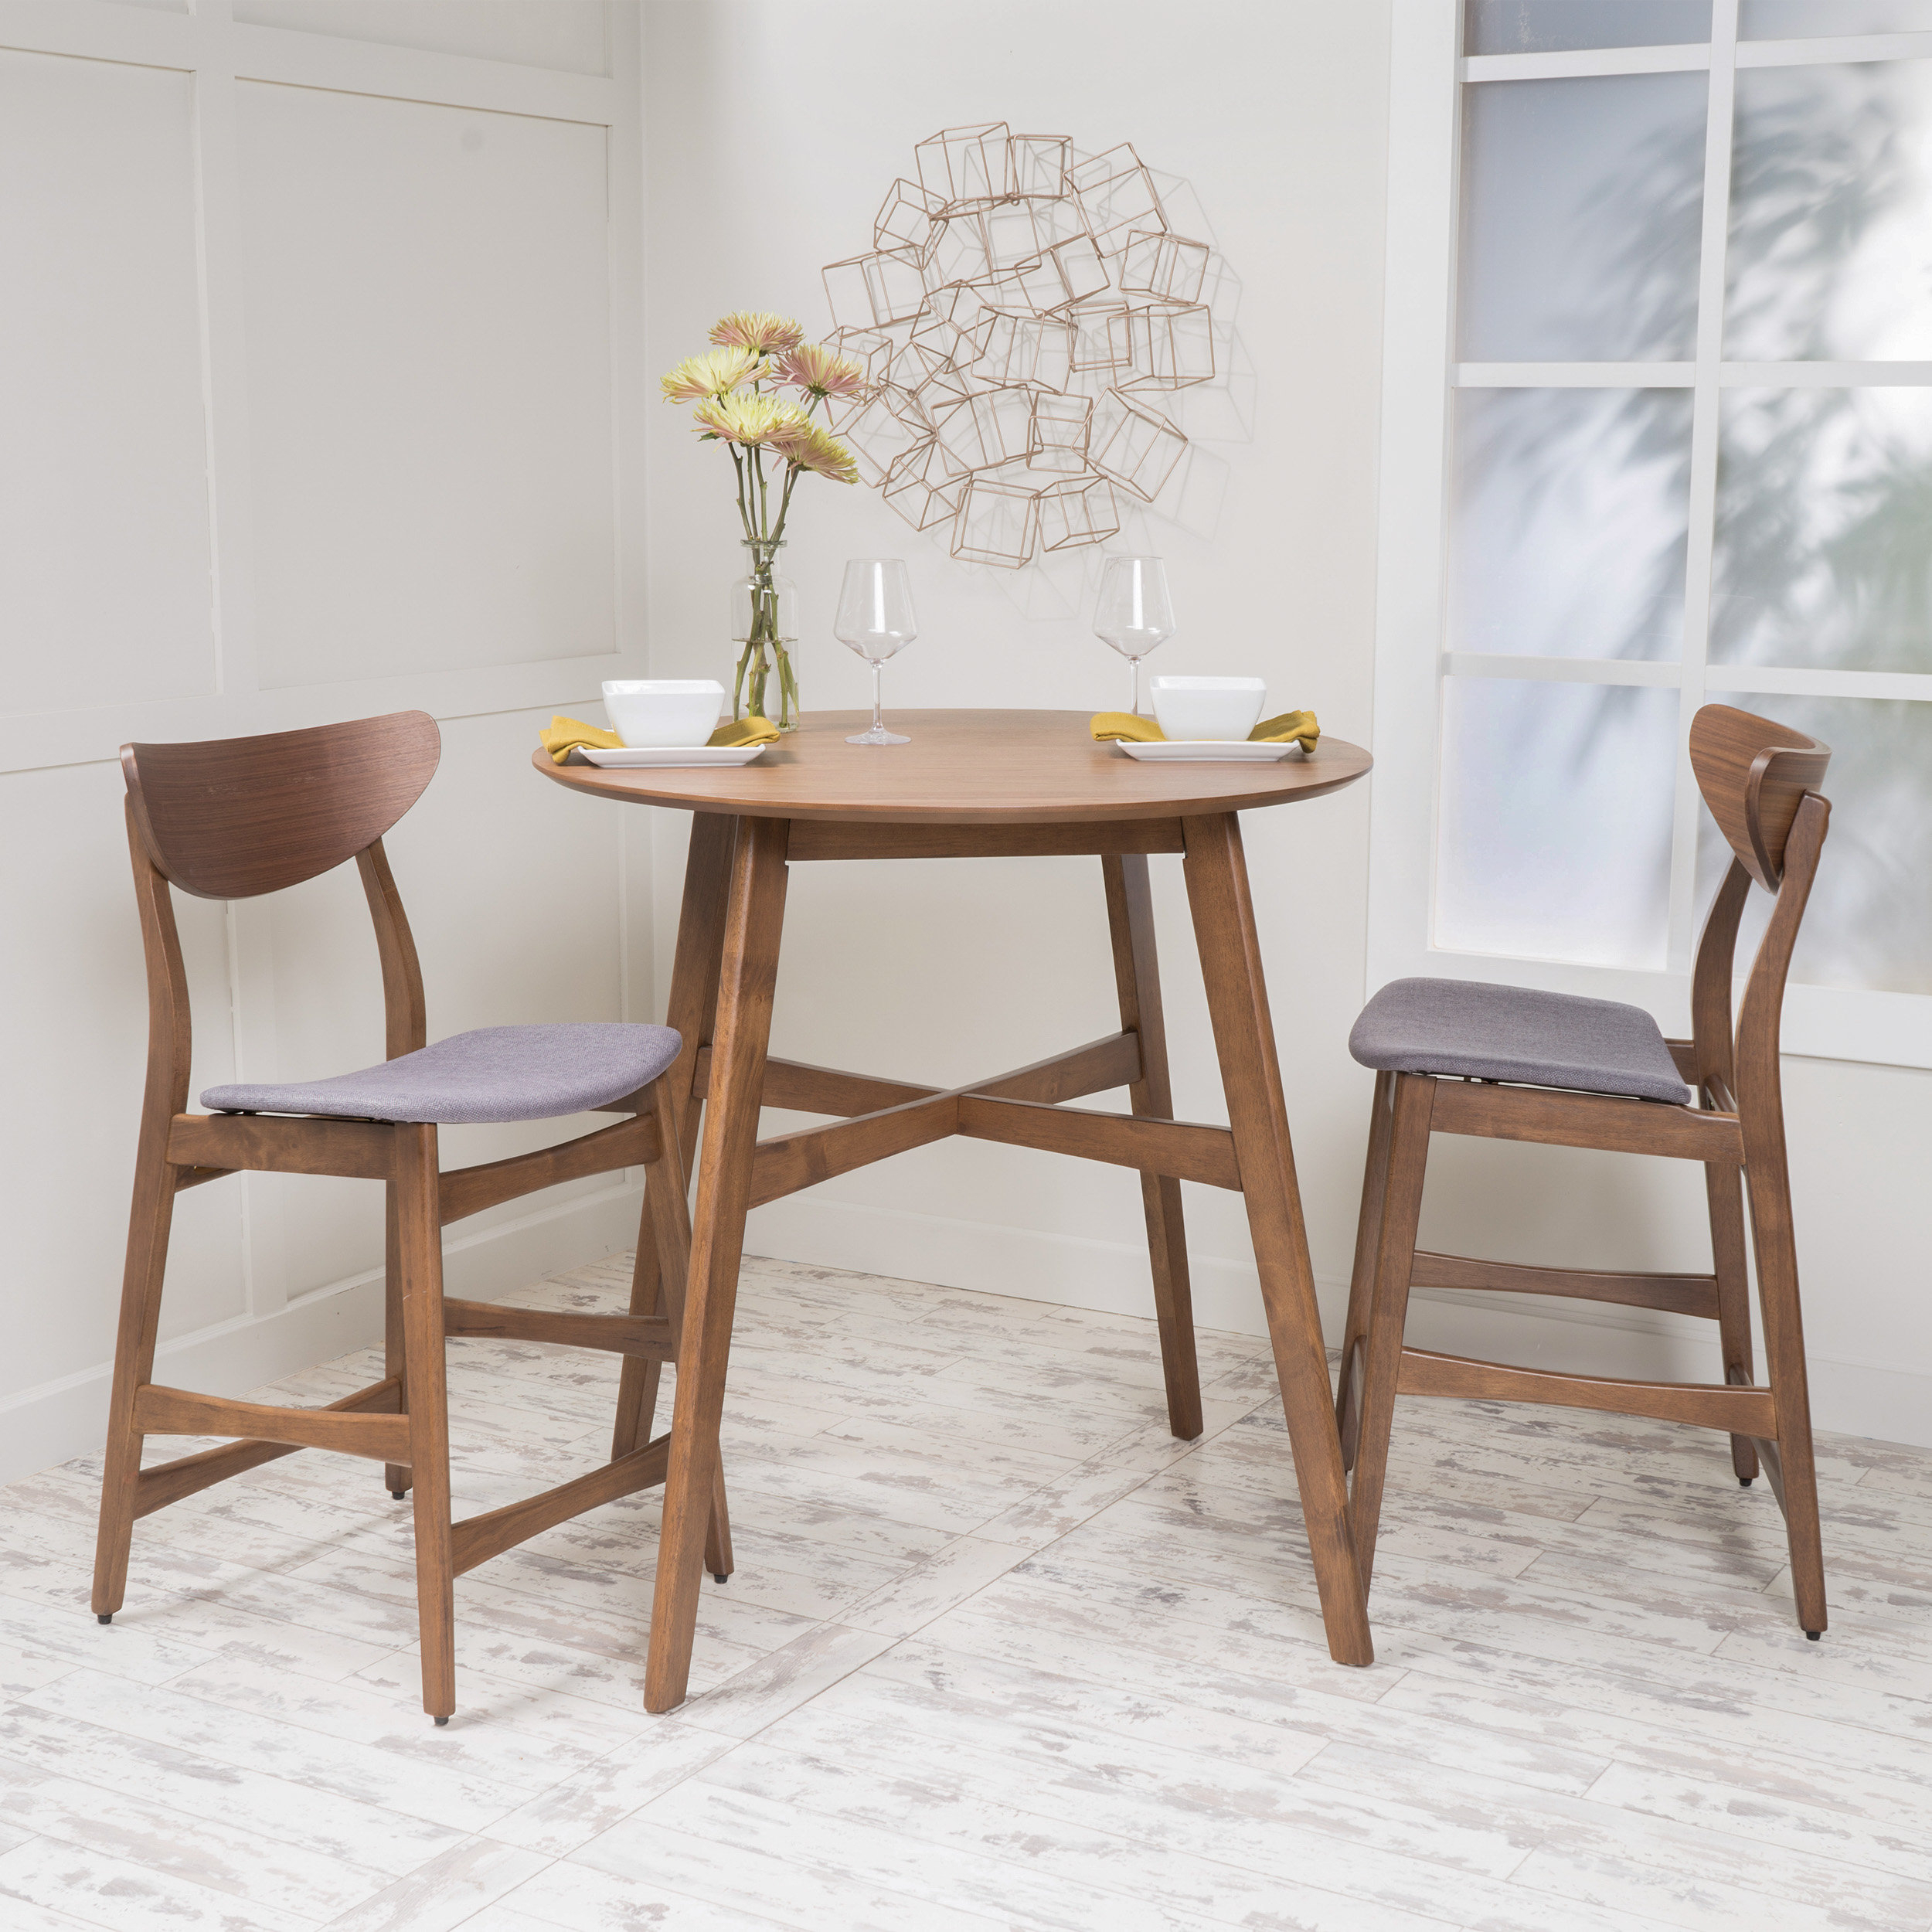 3 Piece Dining Set Counter Height – Ingamecity – Intended For 2018 Mizpah 3 Piece Counter Height Dining Sets (View 8 of 20)